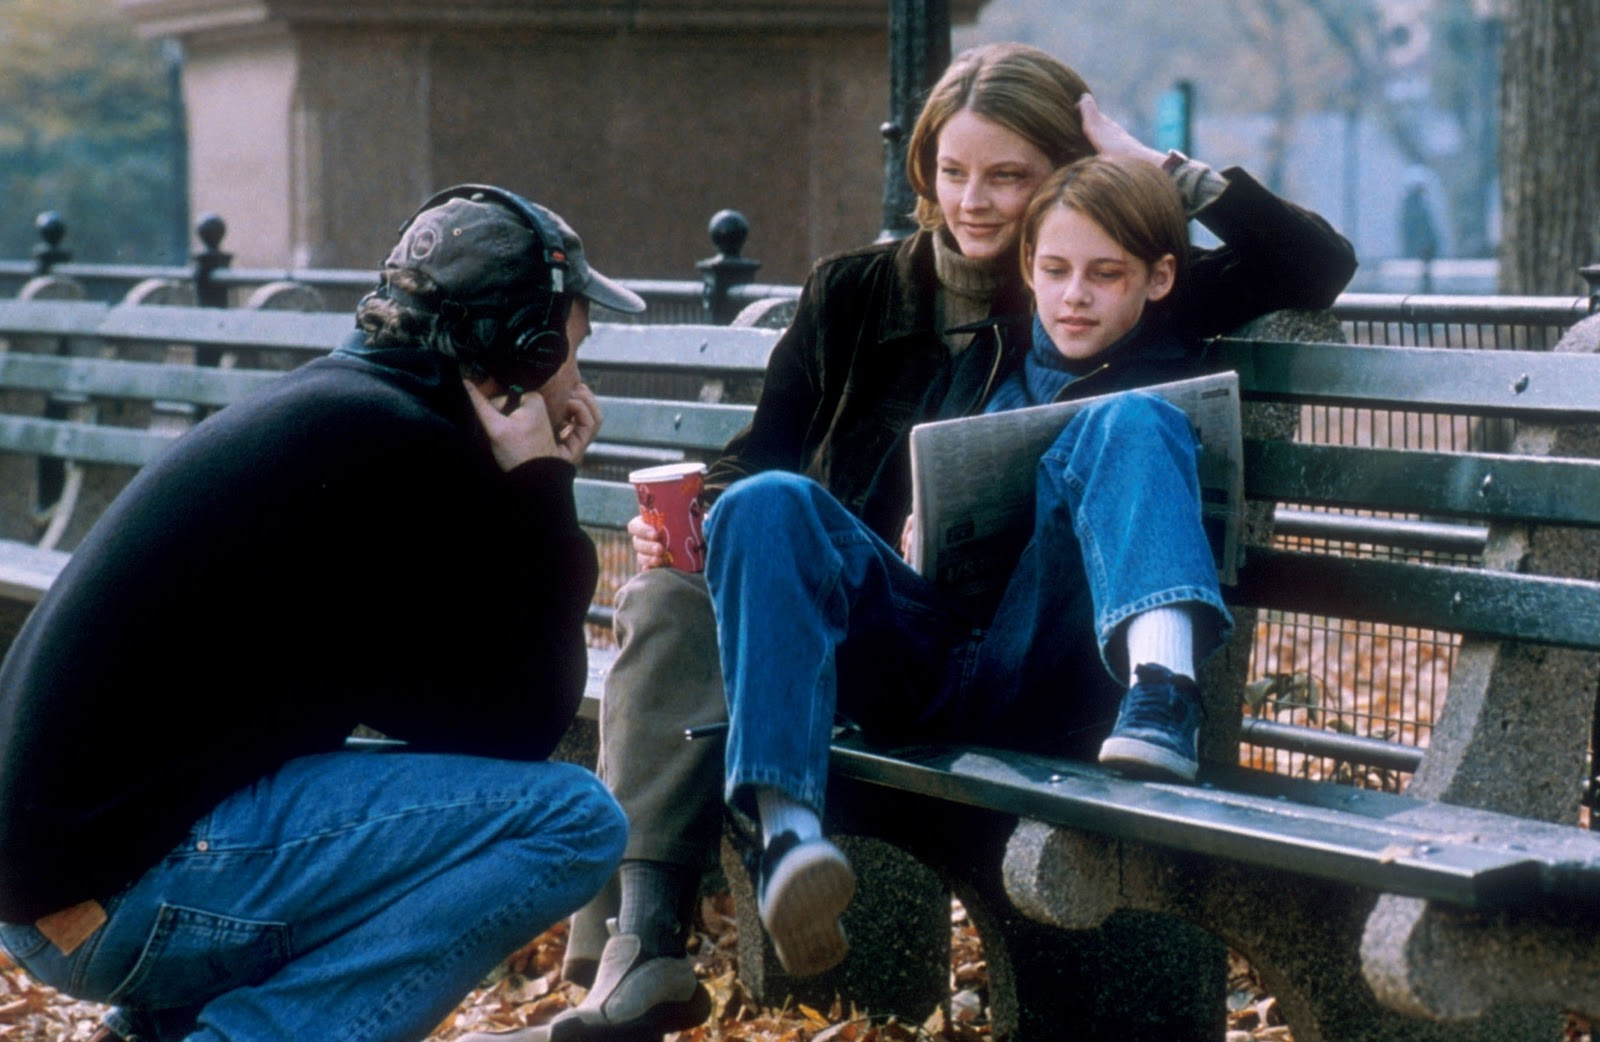 Go Behind The Scenes Of Panic Room With One Hour Making